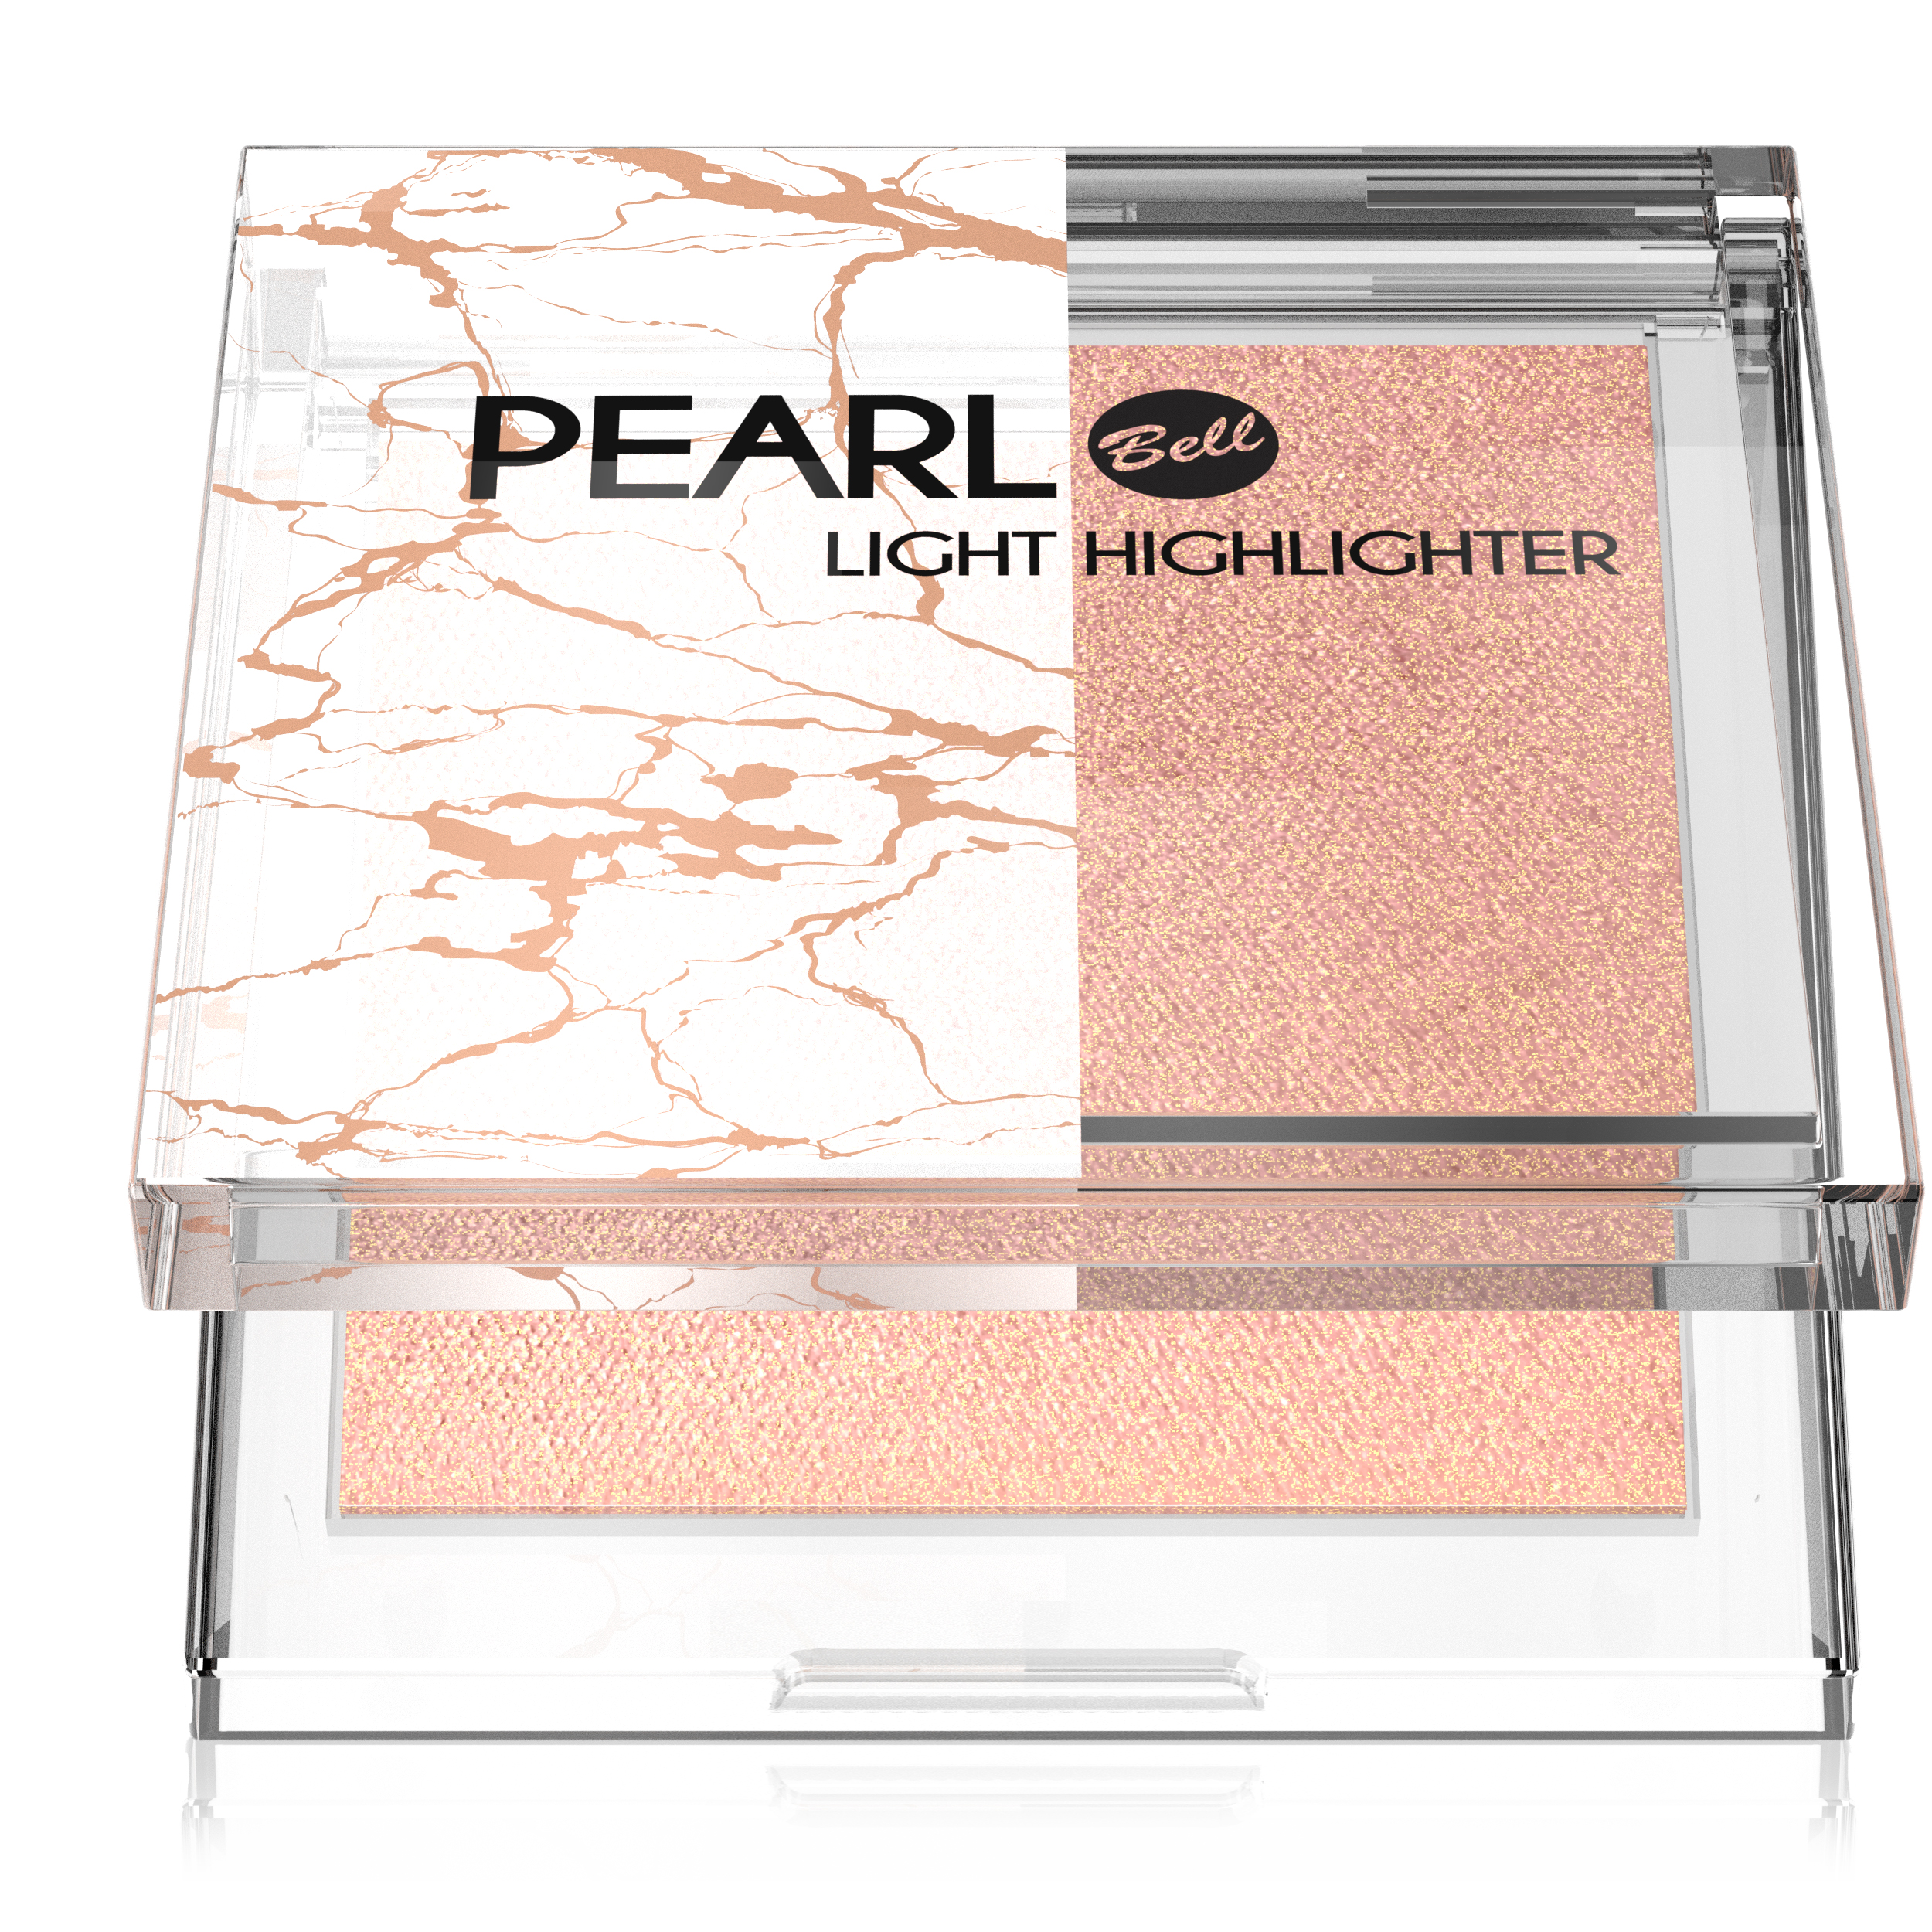 Pearl Light Highlighter